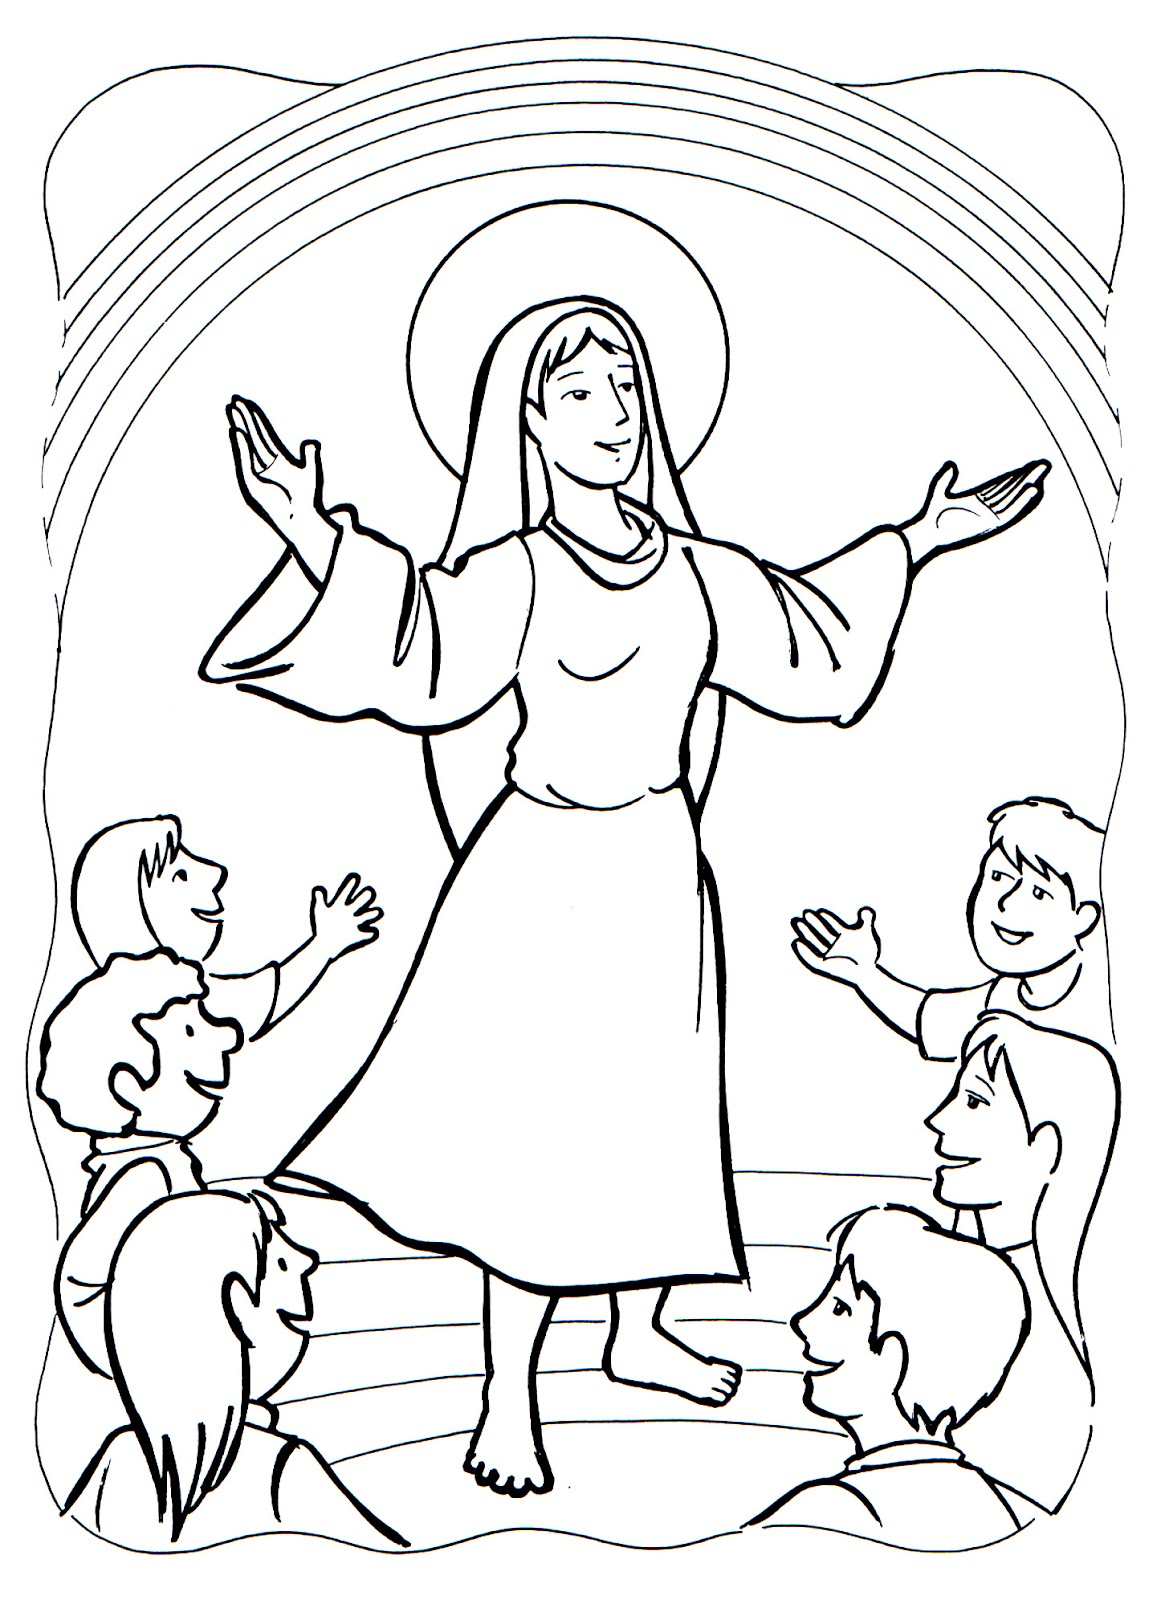 Assumption Drawing at GetDrawings.com   Free for personal use ...